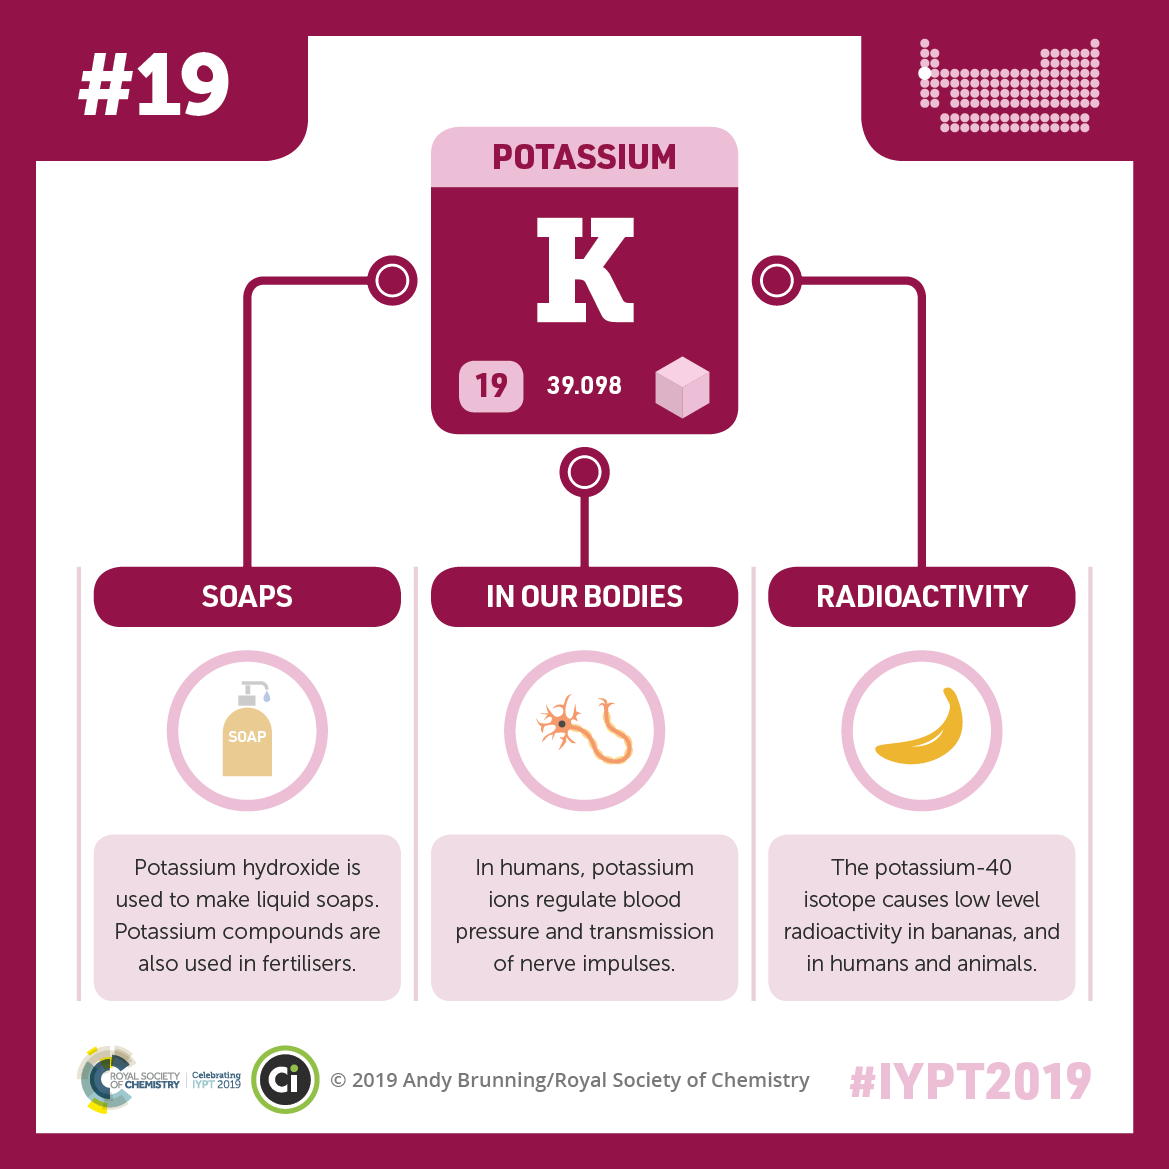 IYPT 2019 Elements 019: Potassium: Soaps and radioactive bananas